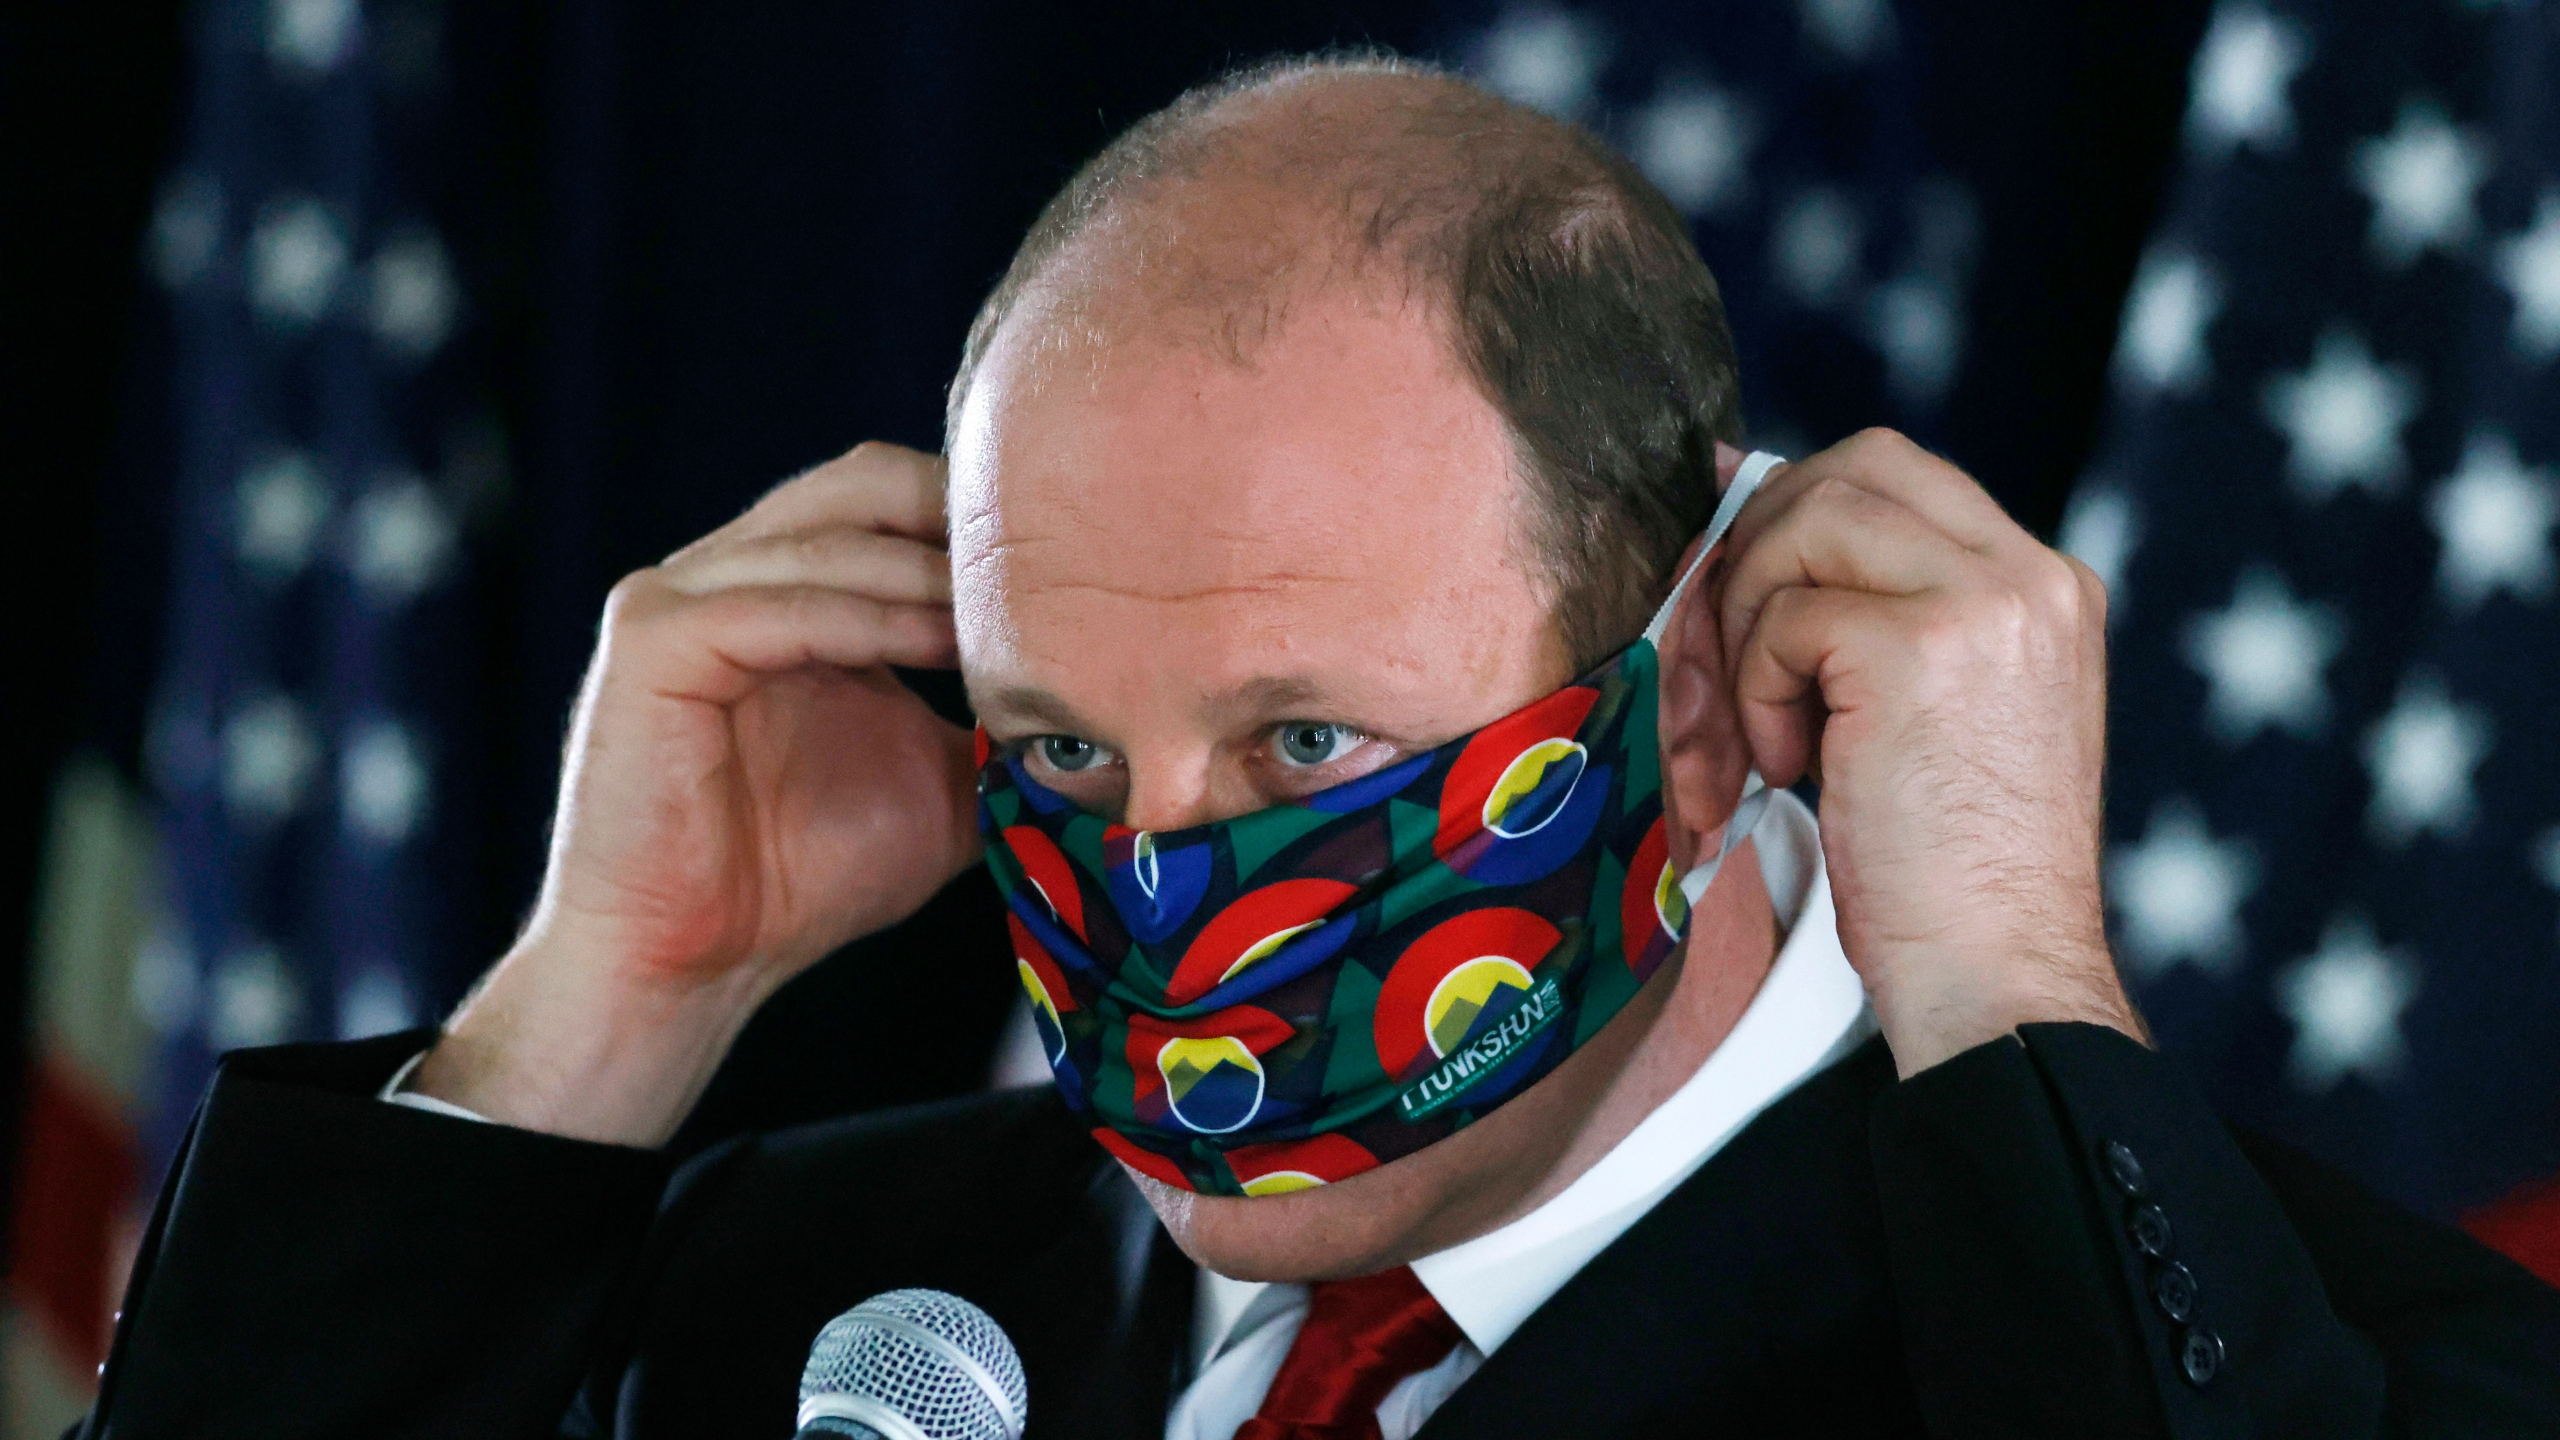 FILE—In this Thursday, May 28, 2020, file photograph, Colorado Governor Jared Polis puts on his face mask after a news conference about the state's efforts against the new coronavirus in Denver. (AP Photo/David Zalubowski, File)